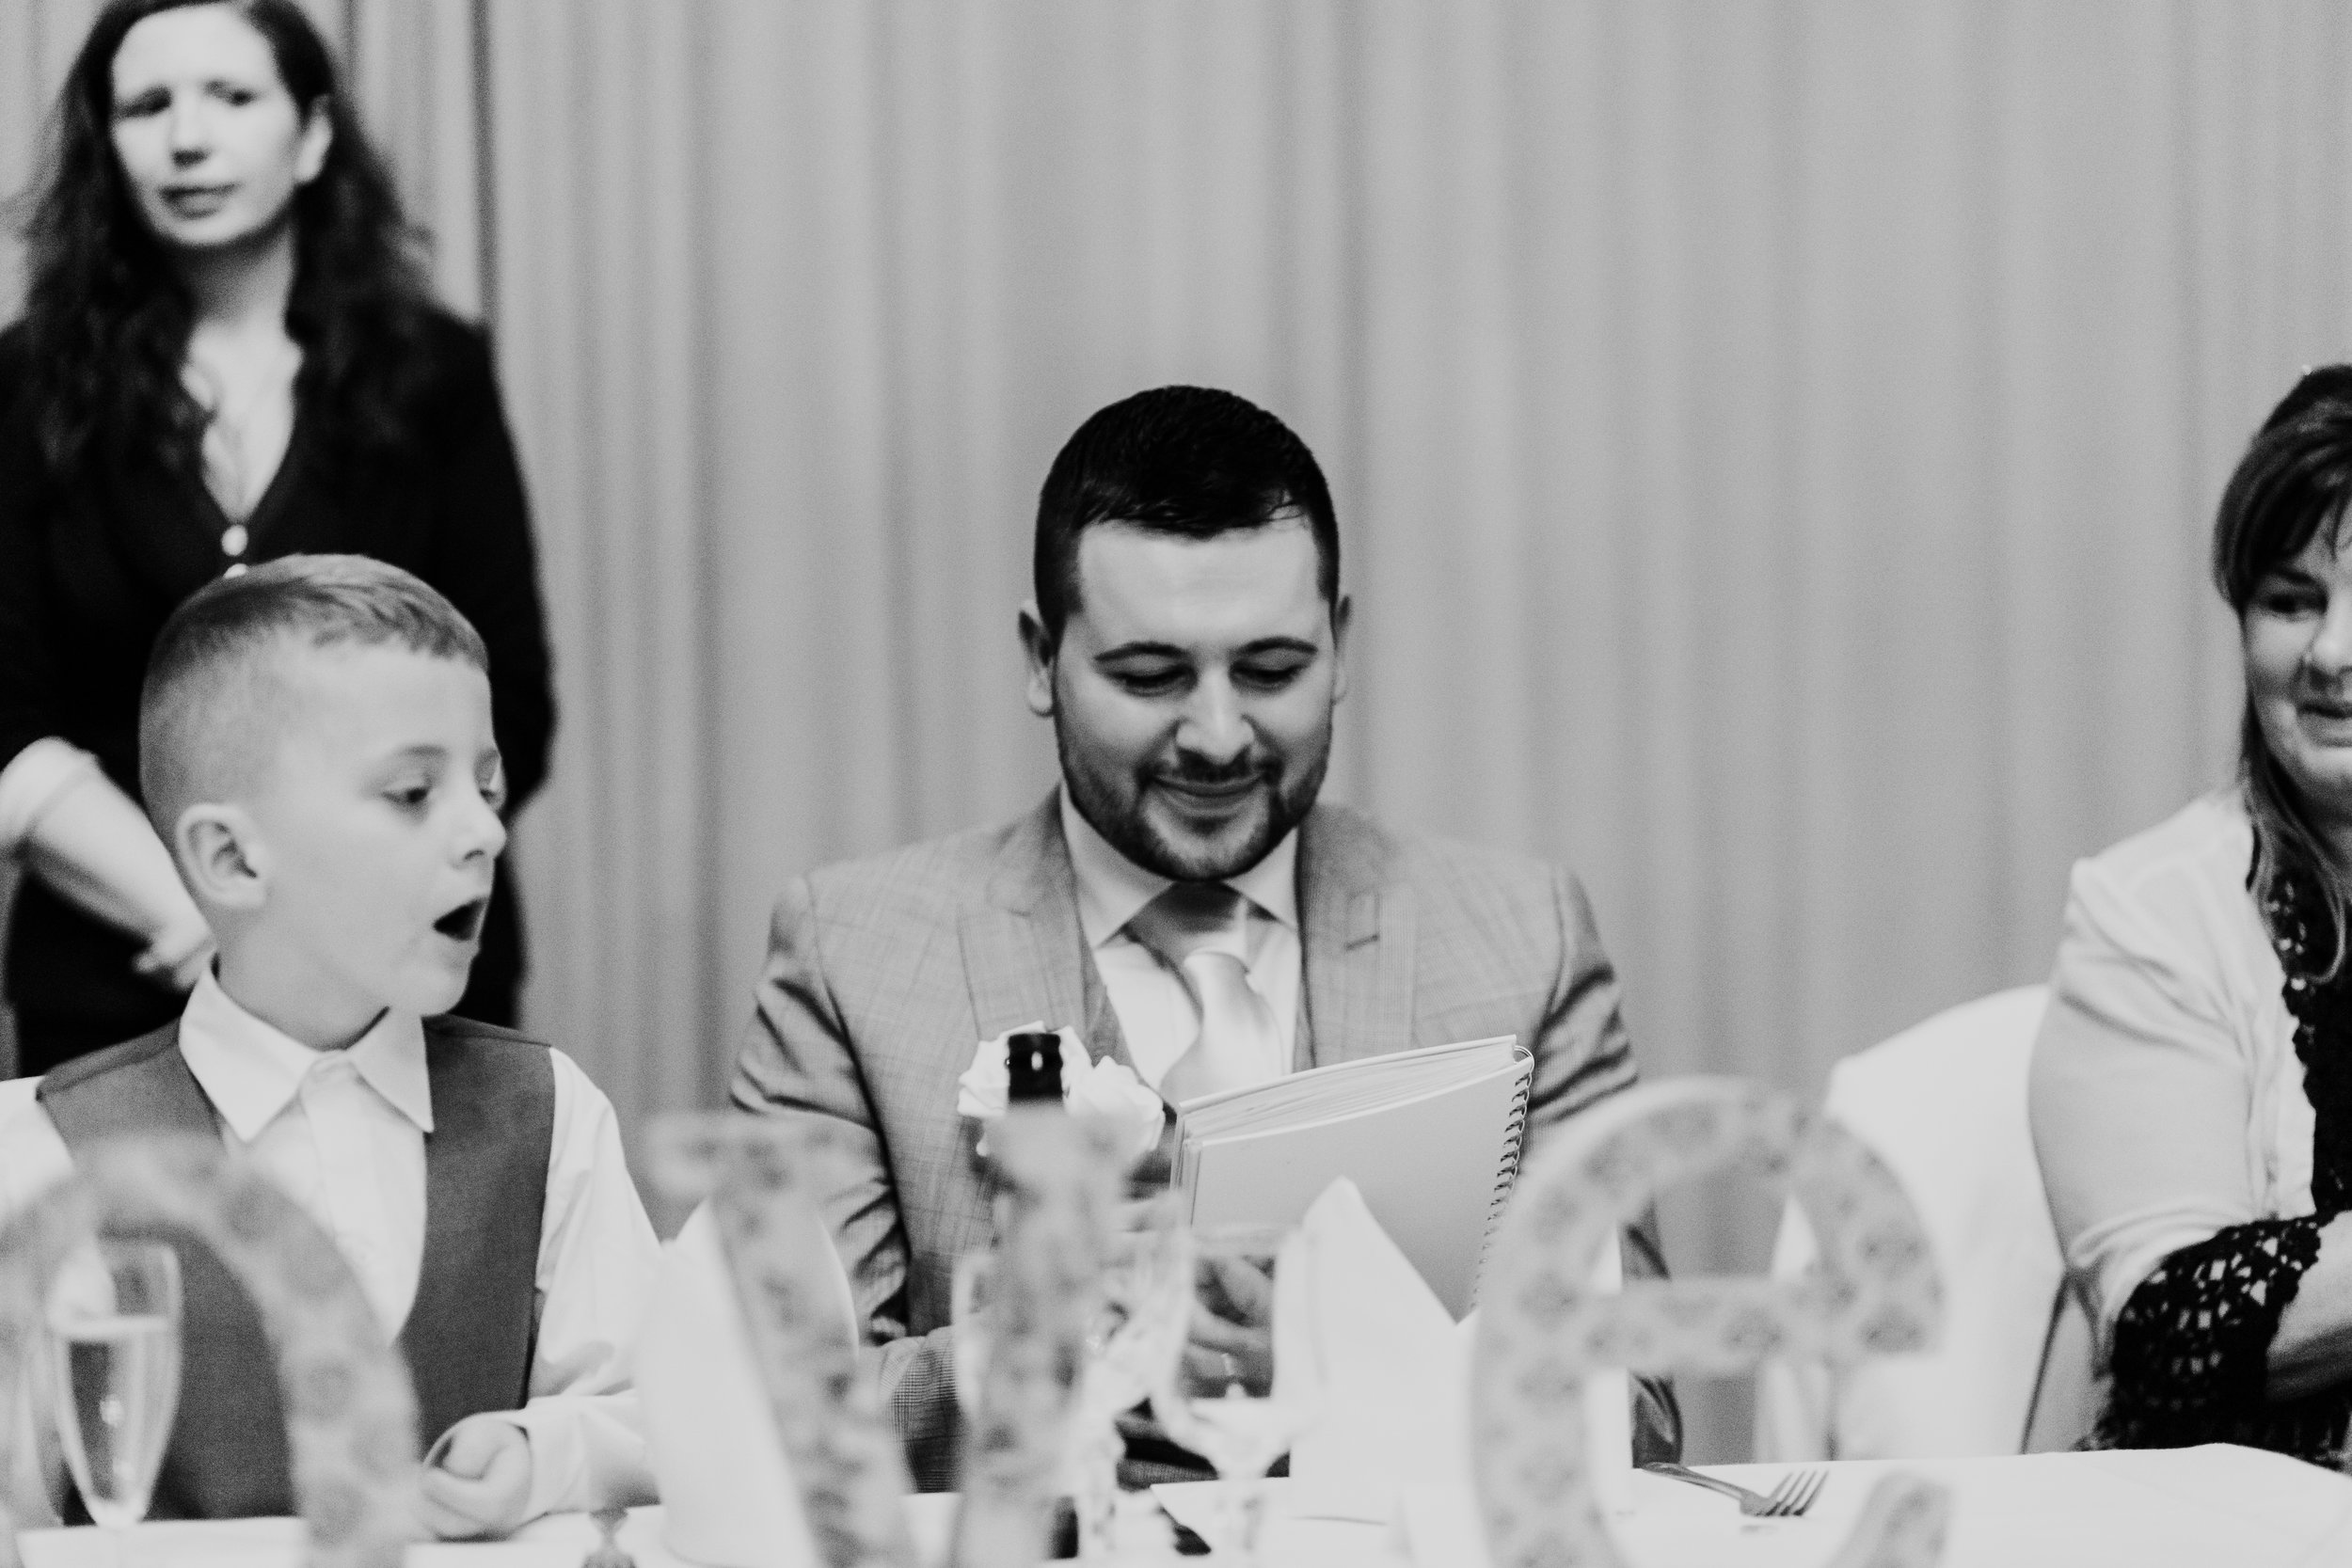 Reaction to getting a hand-made gift during wedding speeches